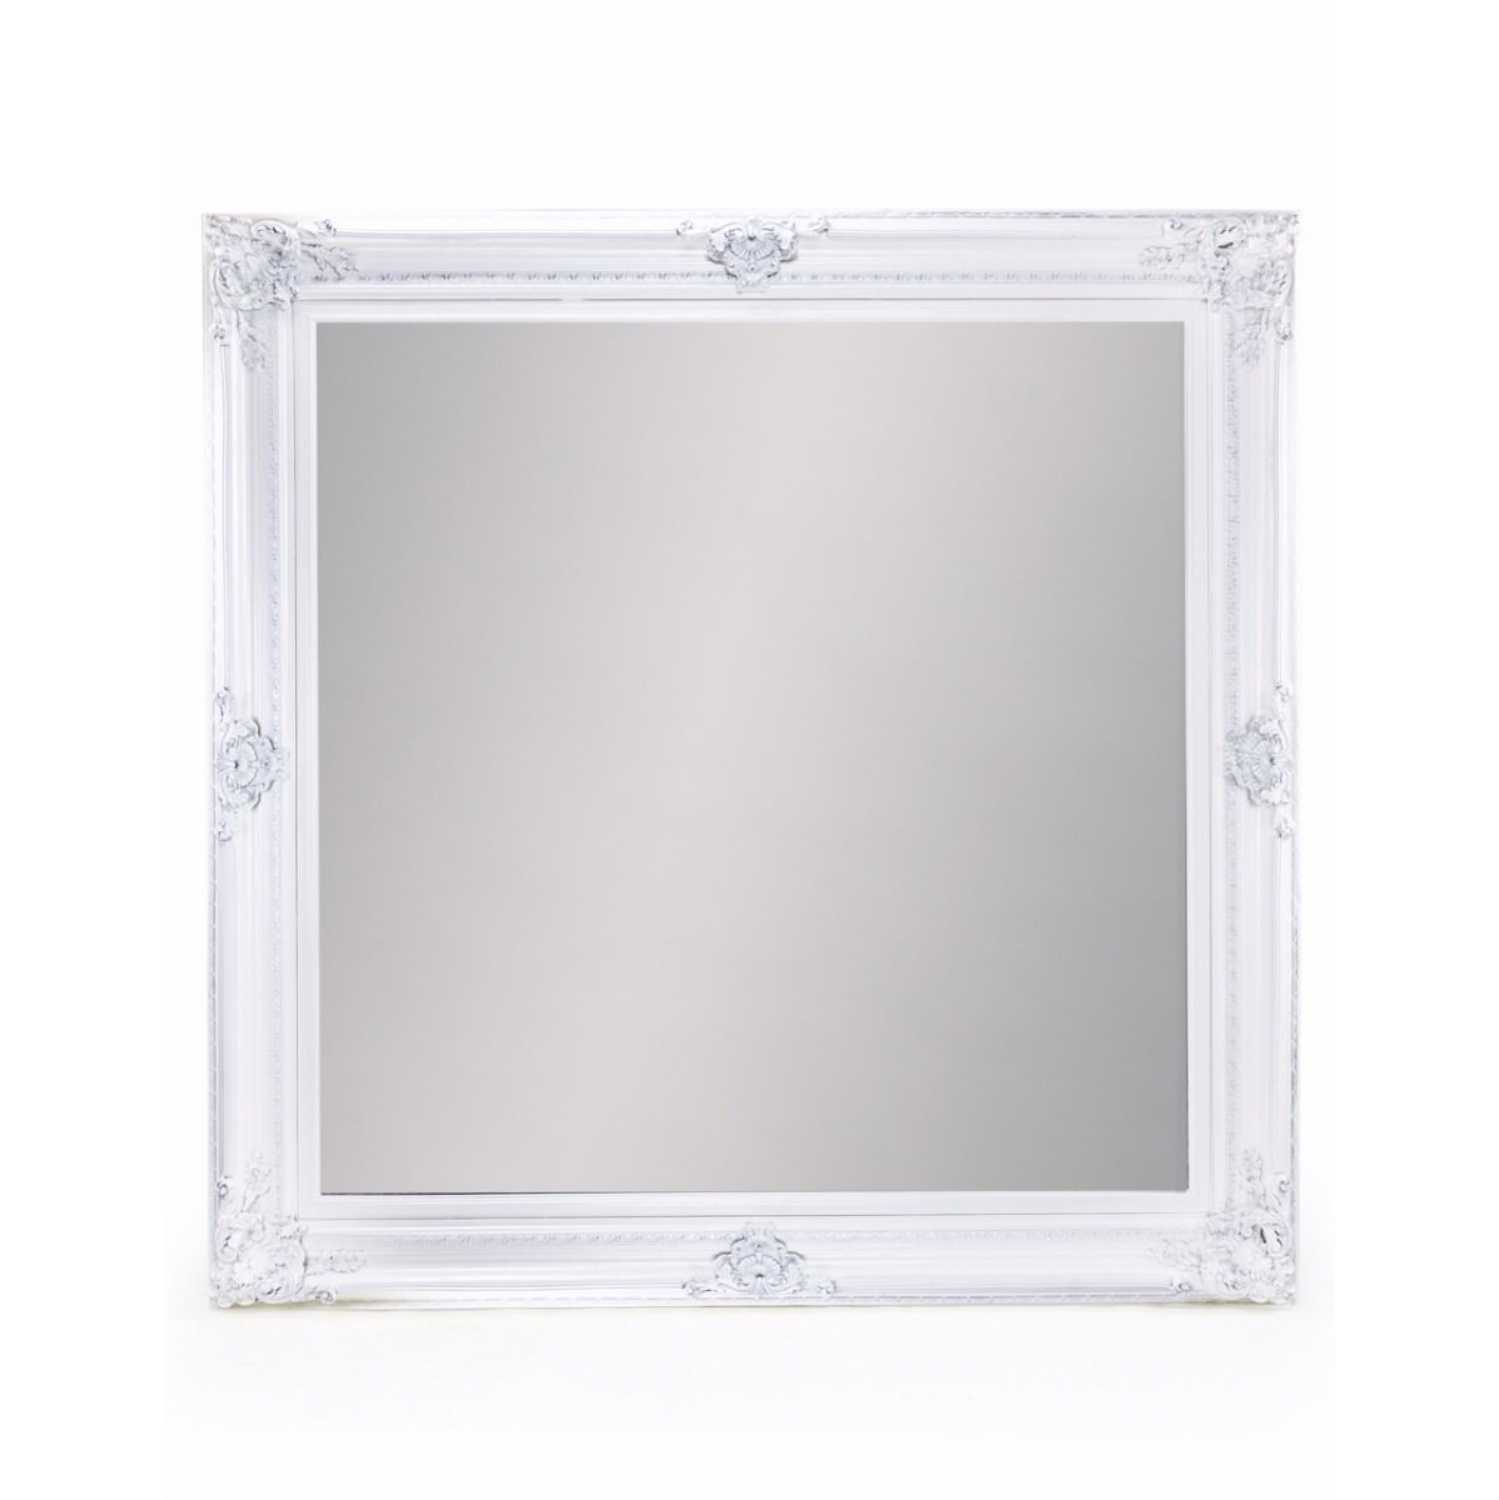 Extra large white square traditional framed wall mirror for Large white mirror